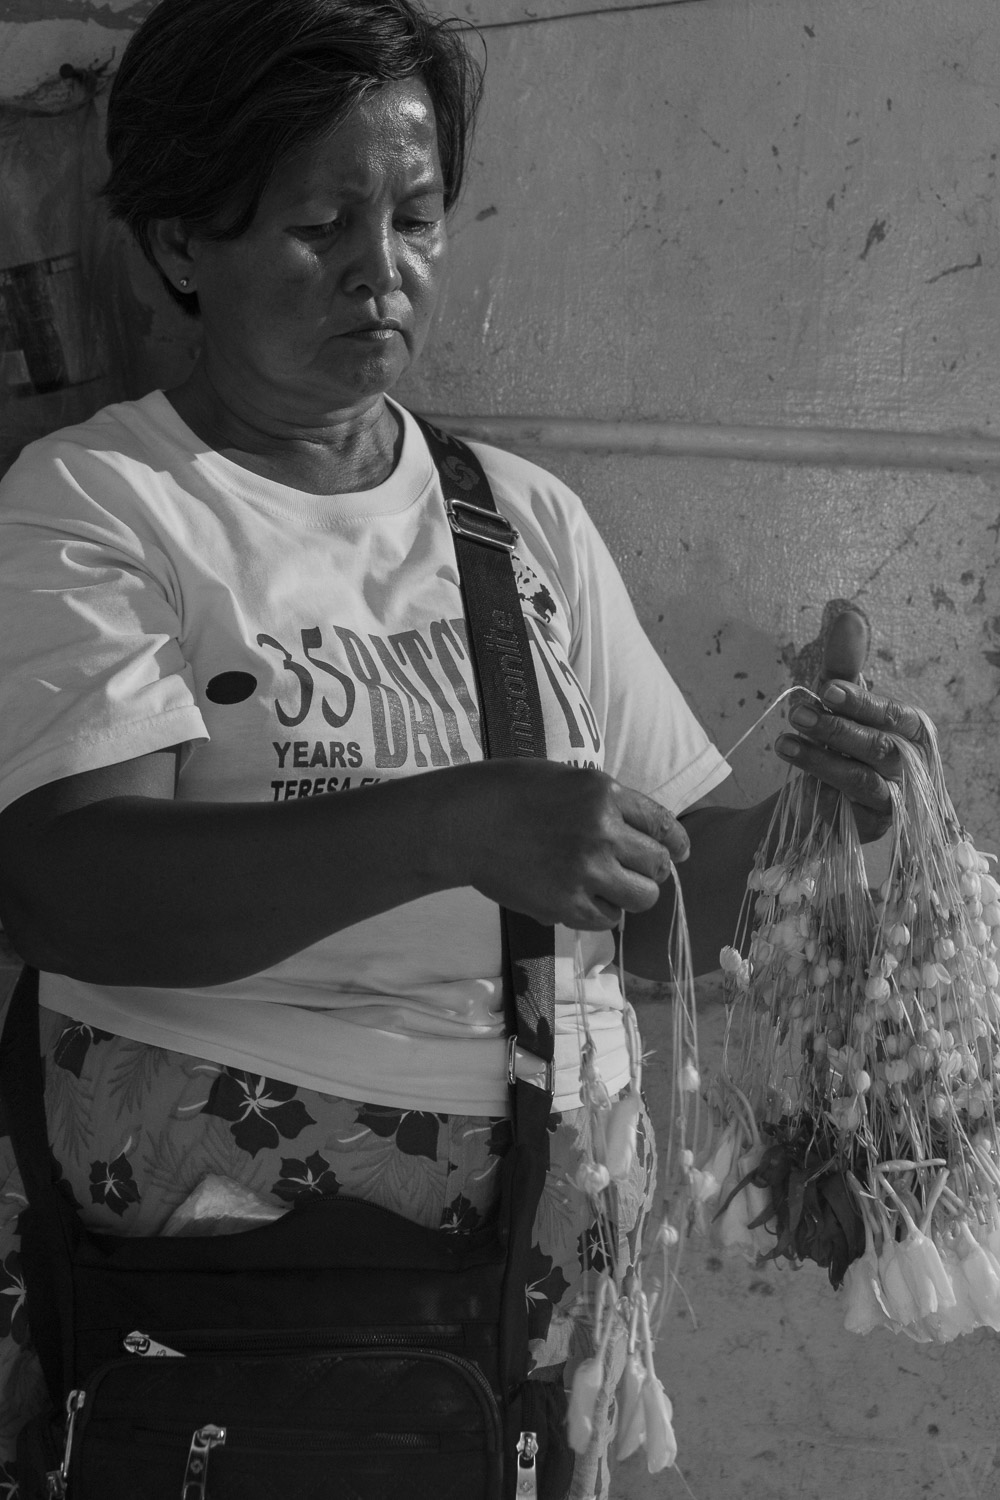 Selling Sampaguita on the streets